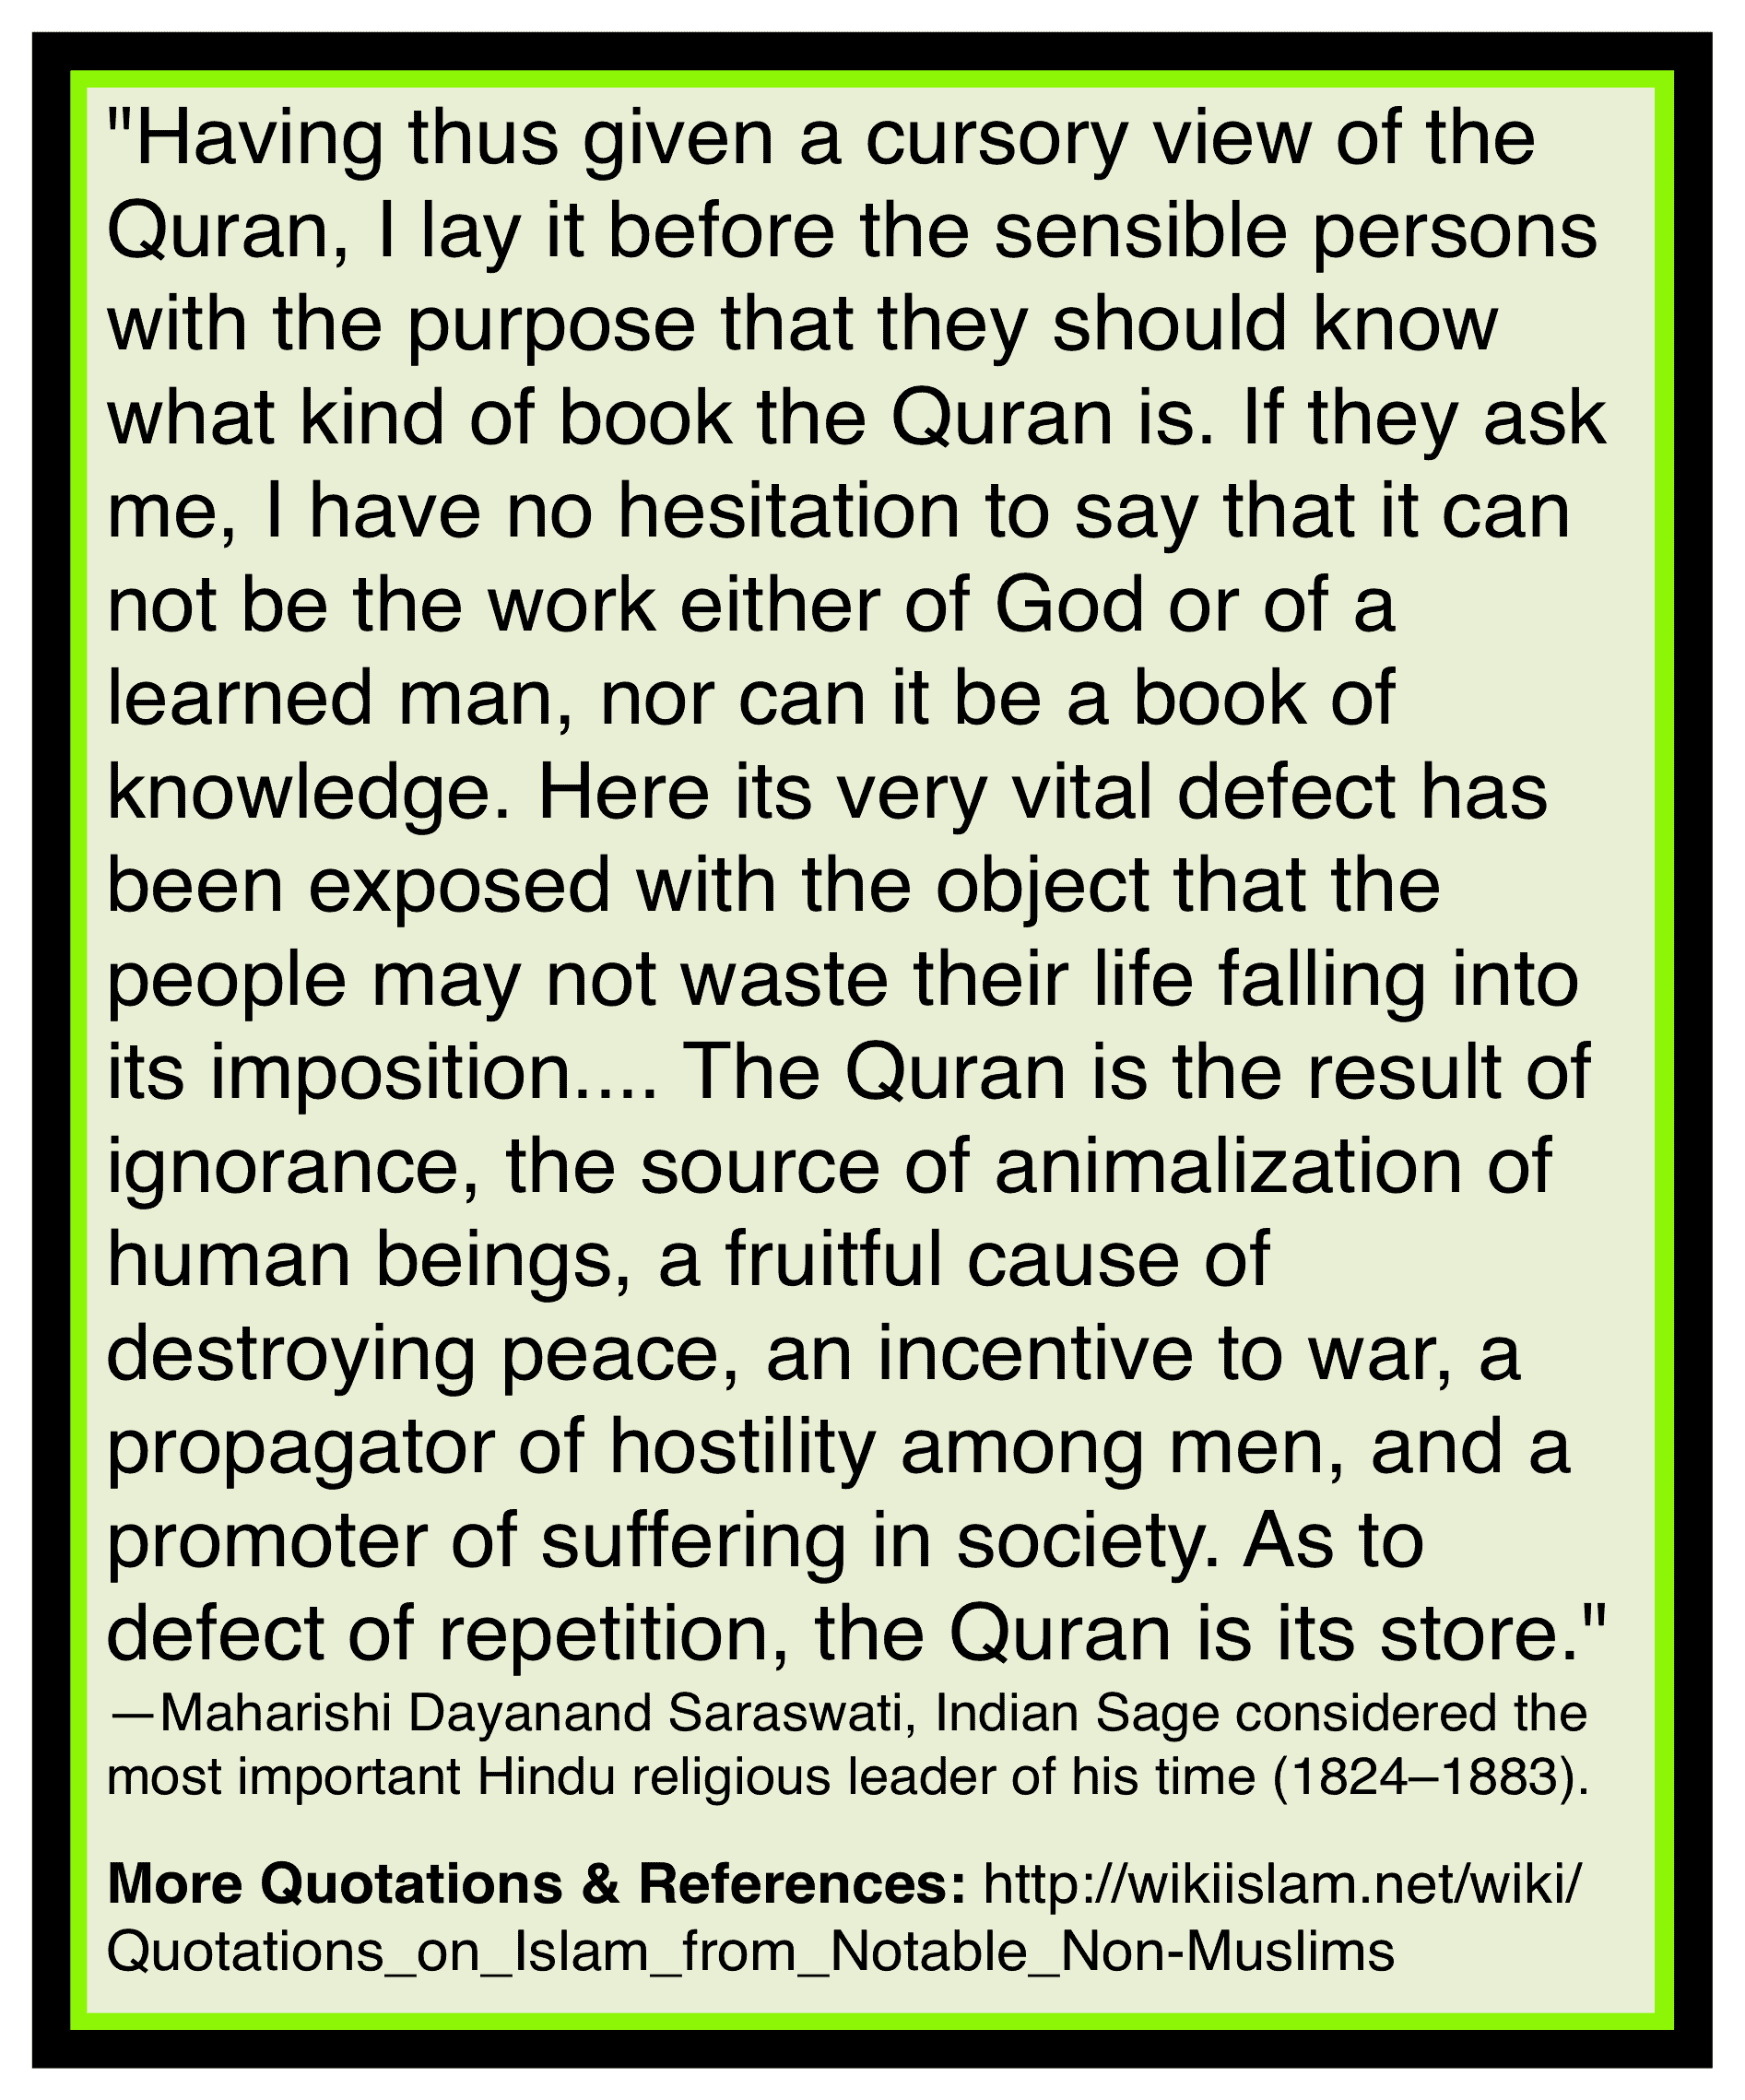 Quran is ignorant book